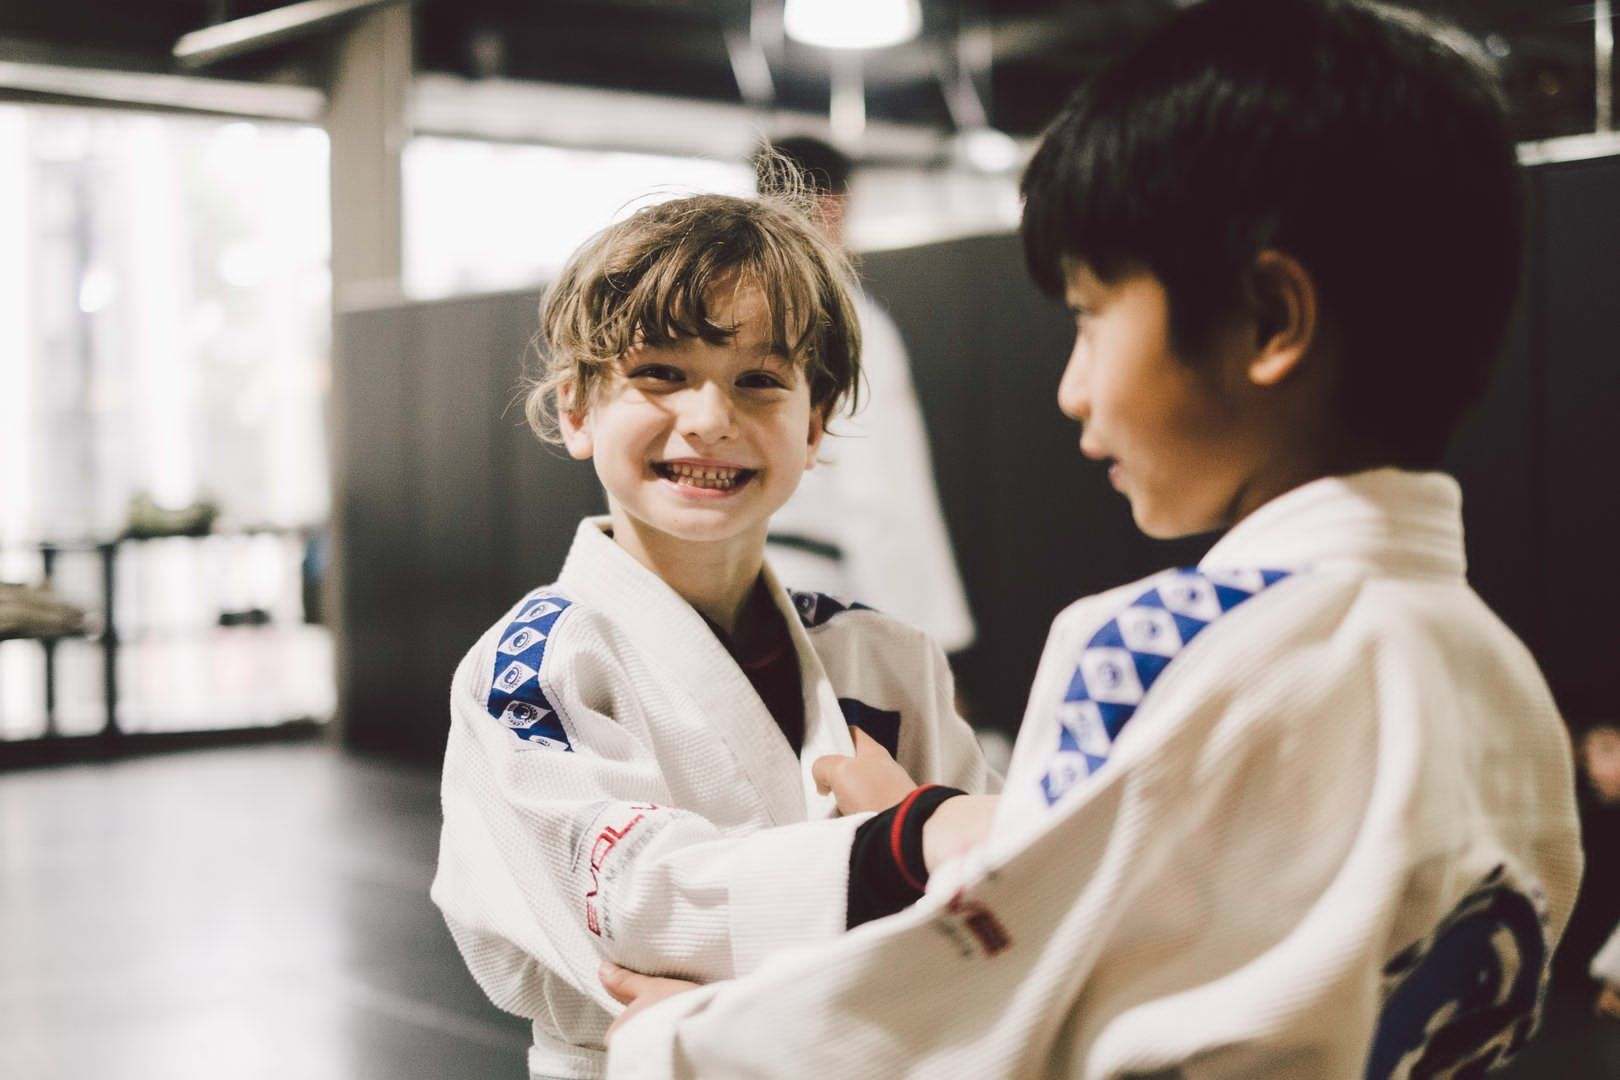 Martial arts boosts endorphins, so your kids would feel great after every class!